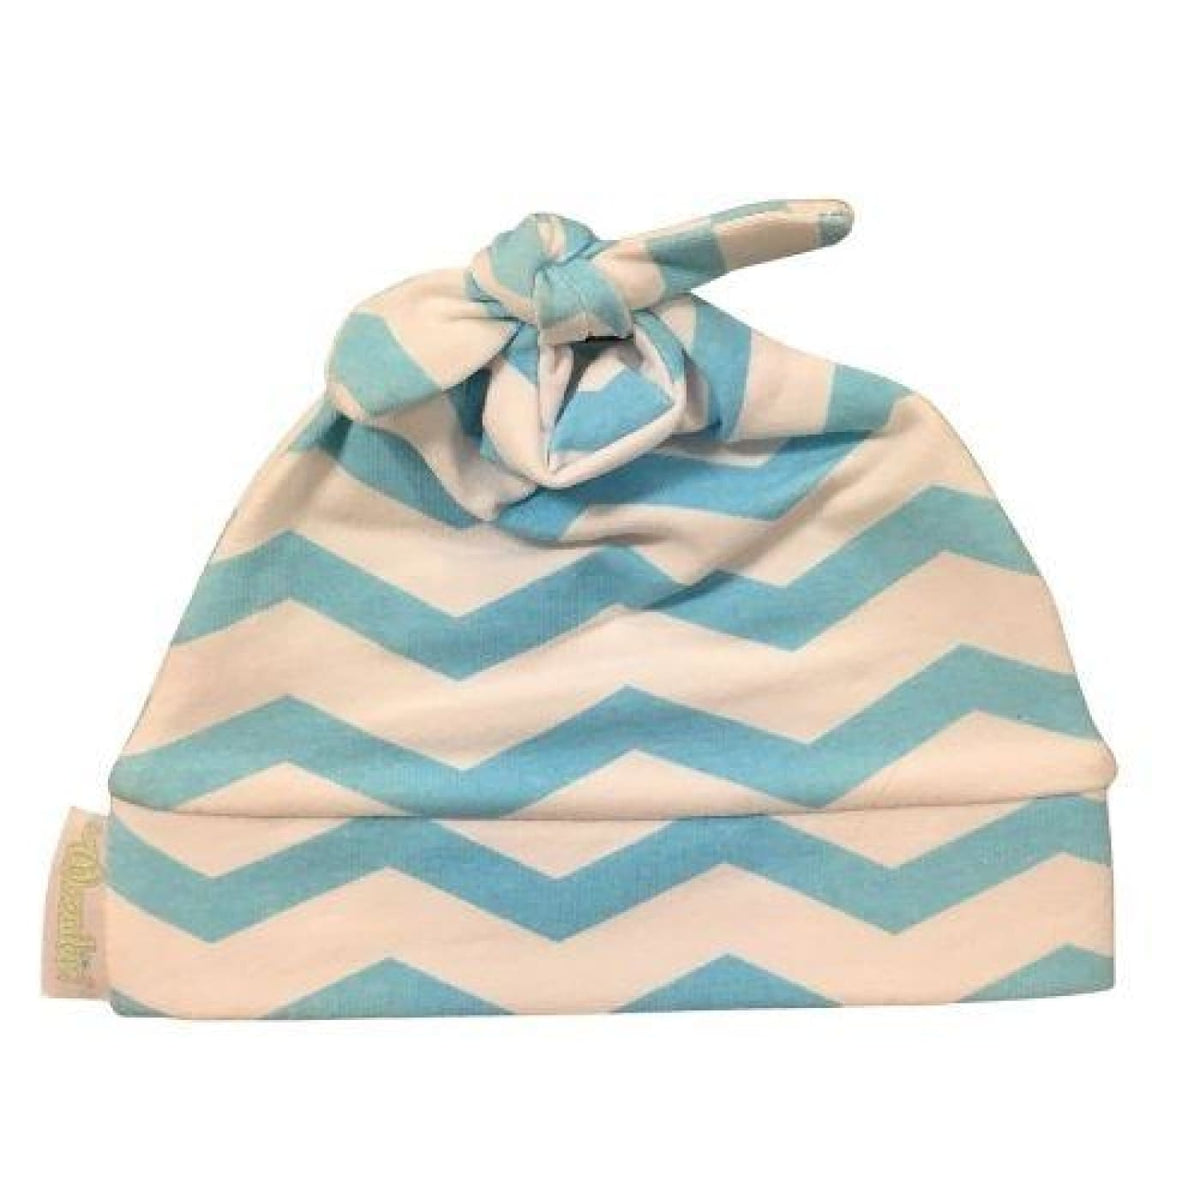 Woombie Cotton Beanie Aqua Chevron 0-6M - Aqua Chevron - BABY & TODDLER CLOTHING - BEANIES/HATS